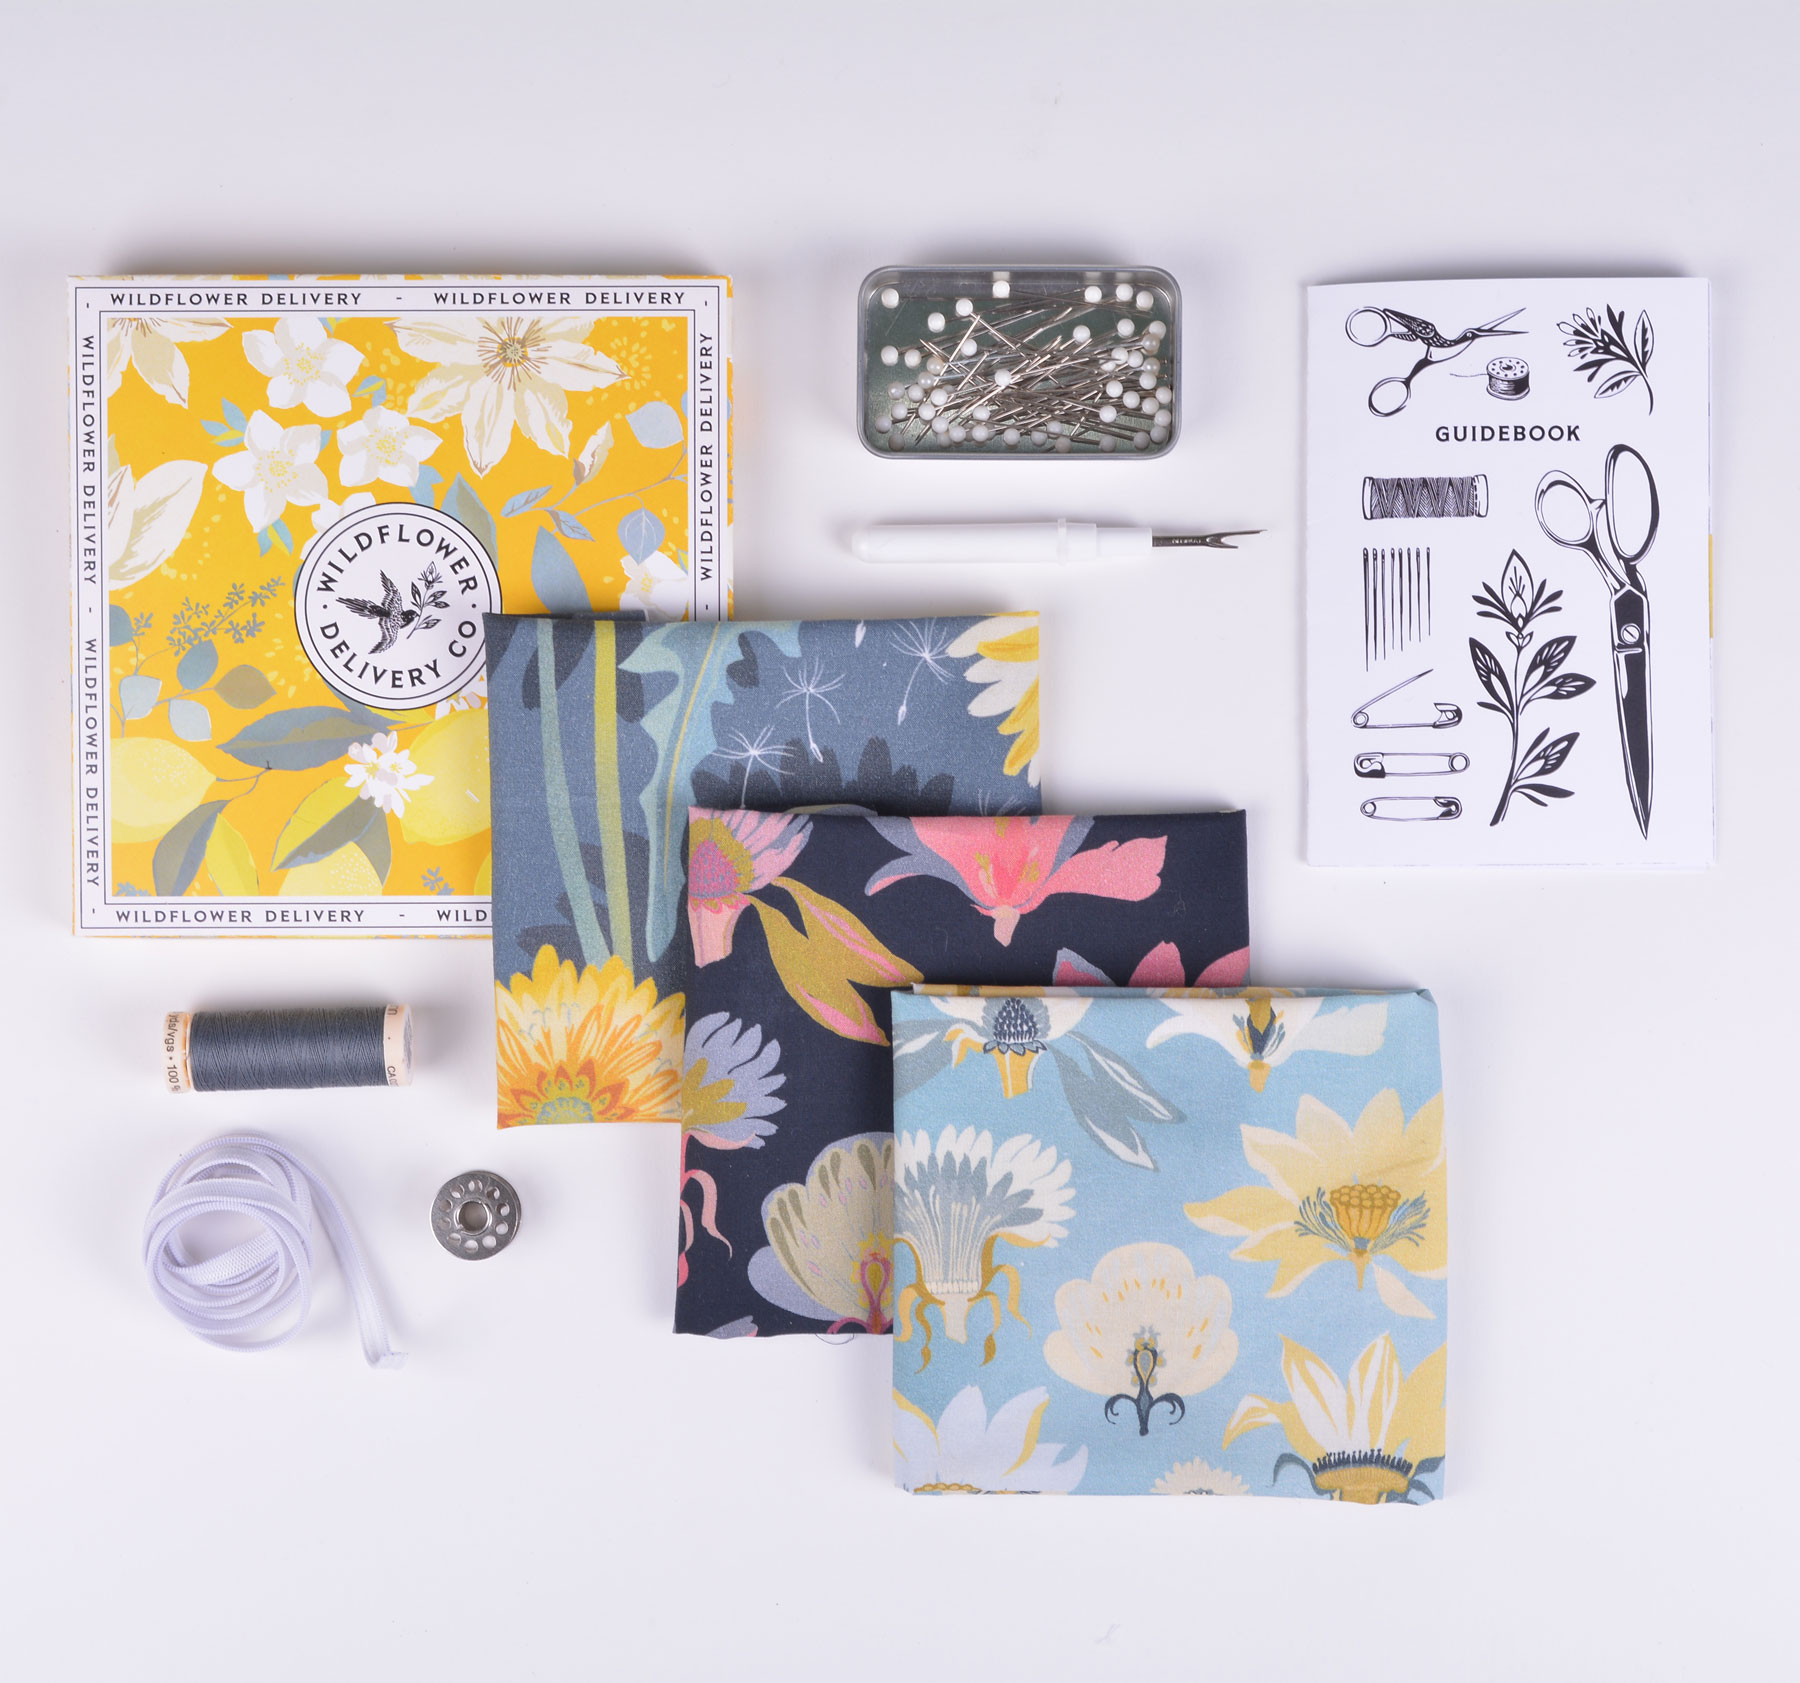 6 Clever Items (1/1/21) - 6 Clever Items (1/1/21) - Wildflower Delivery Co. Modern Sewing Kits